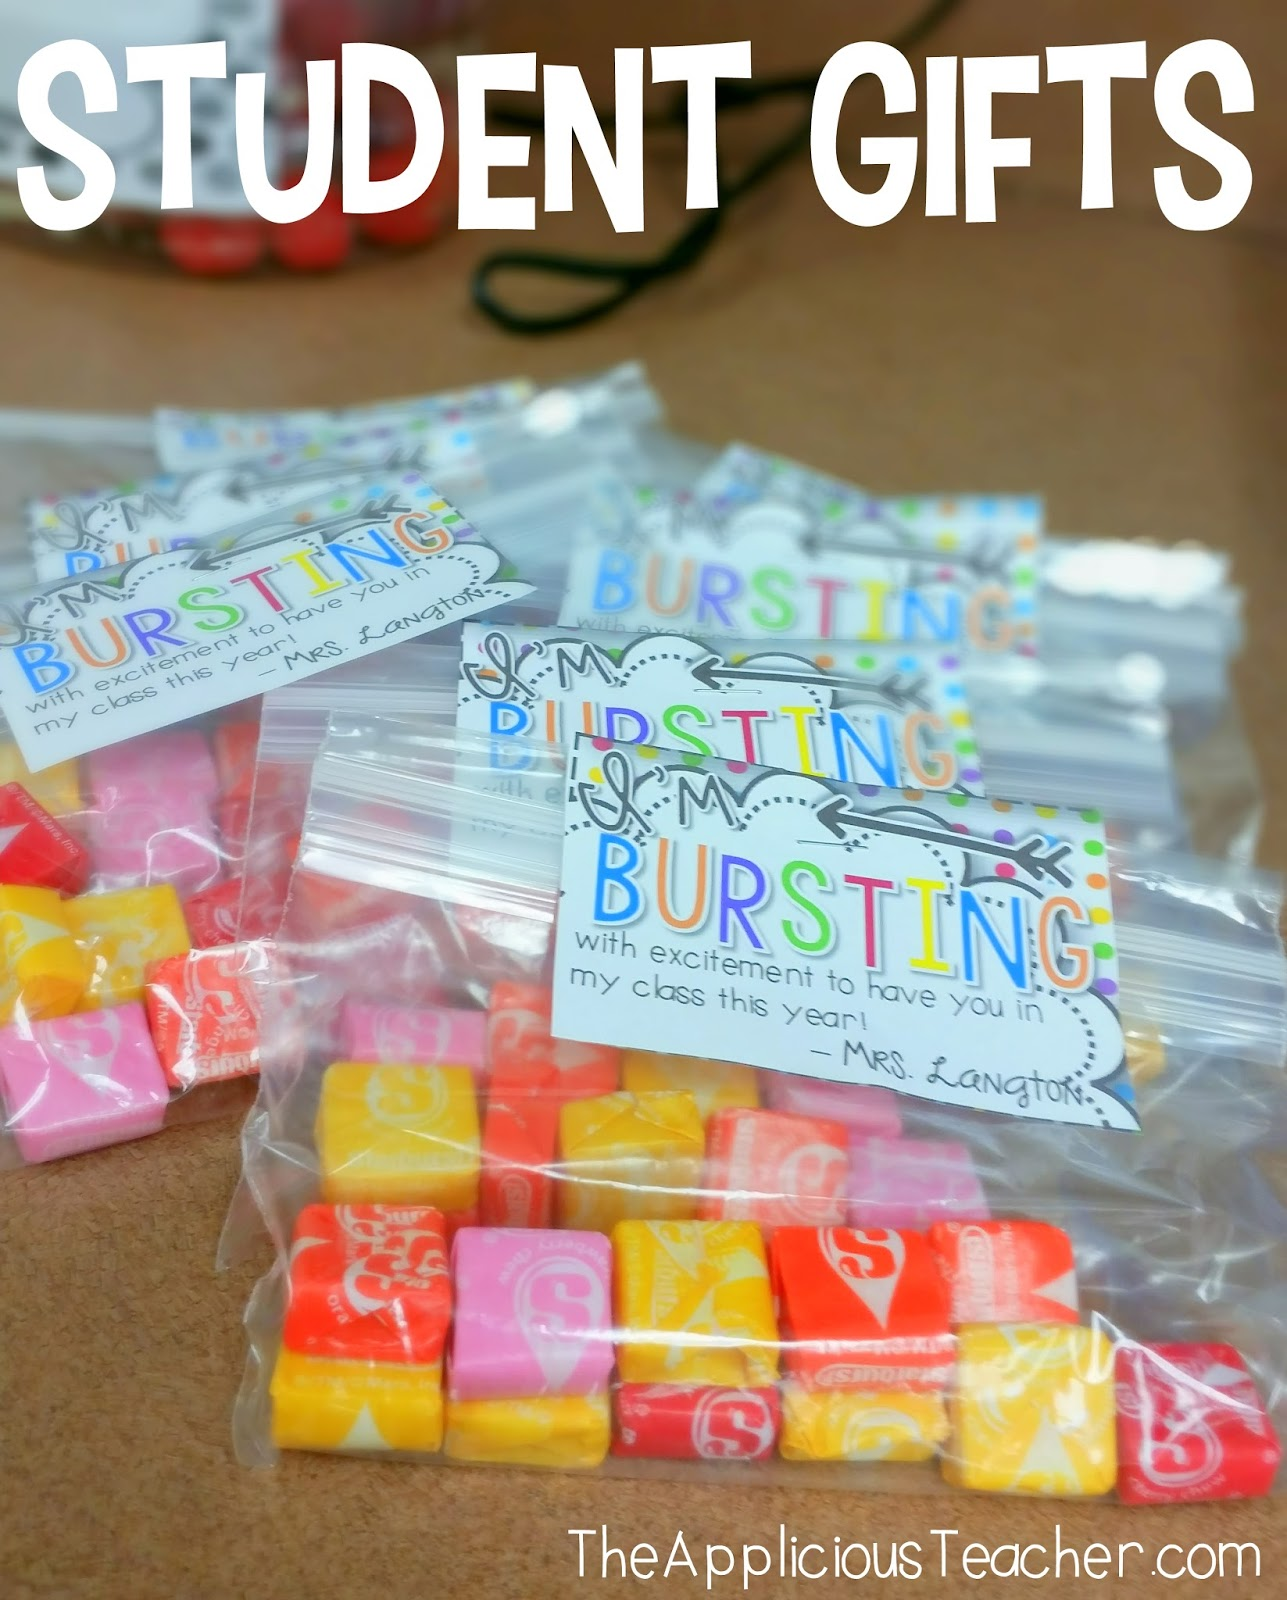 Classroom Gift Ideas For Students ~ Meet the teacher applicious